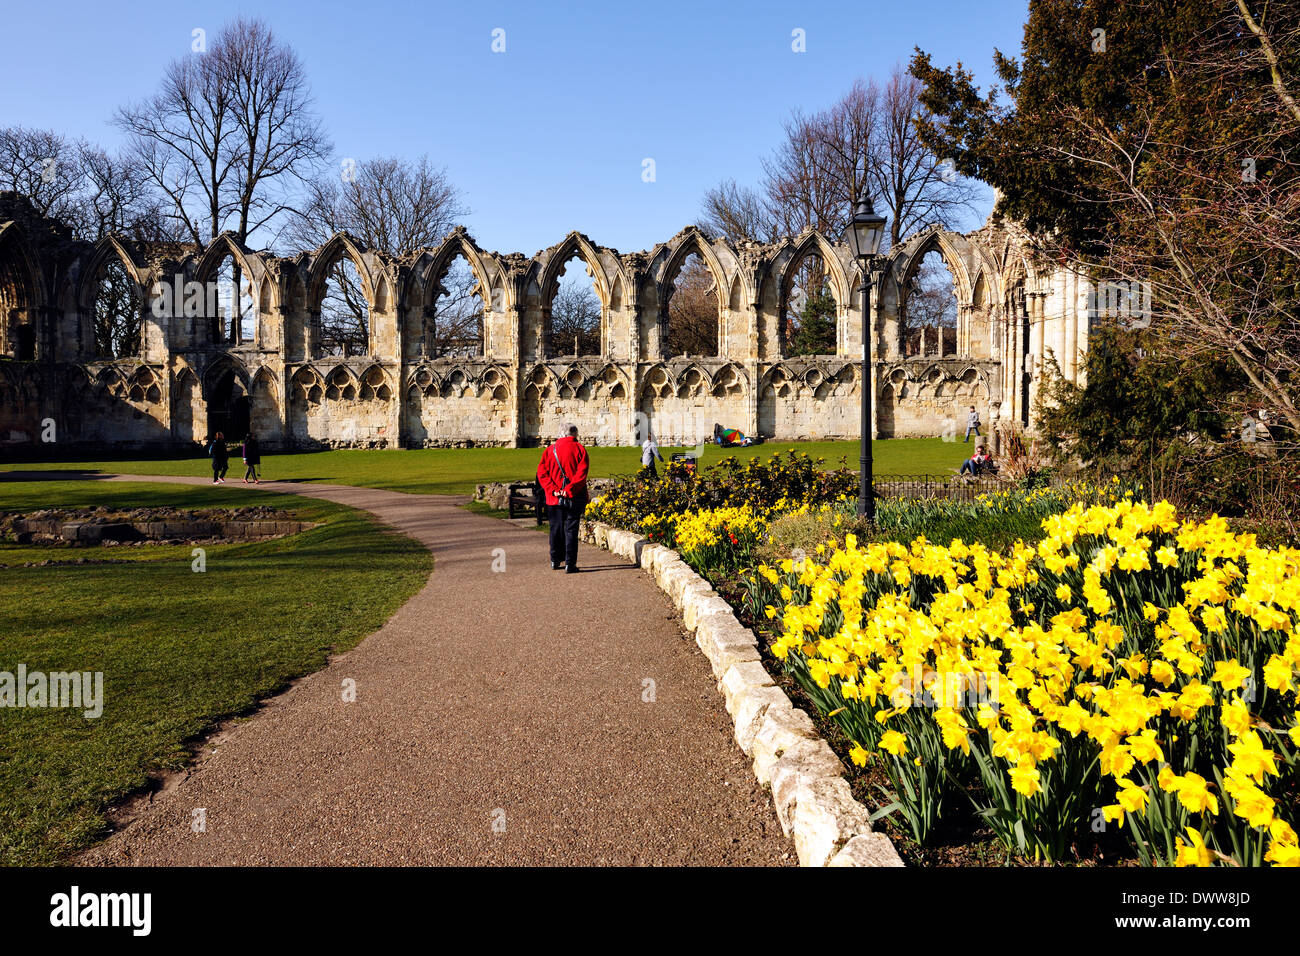 A colourful tourist appreciating Spring flowers in the Botanical Gardens, City of York, Yorkshire, England - Stock Image